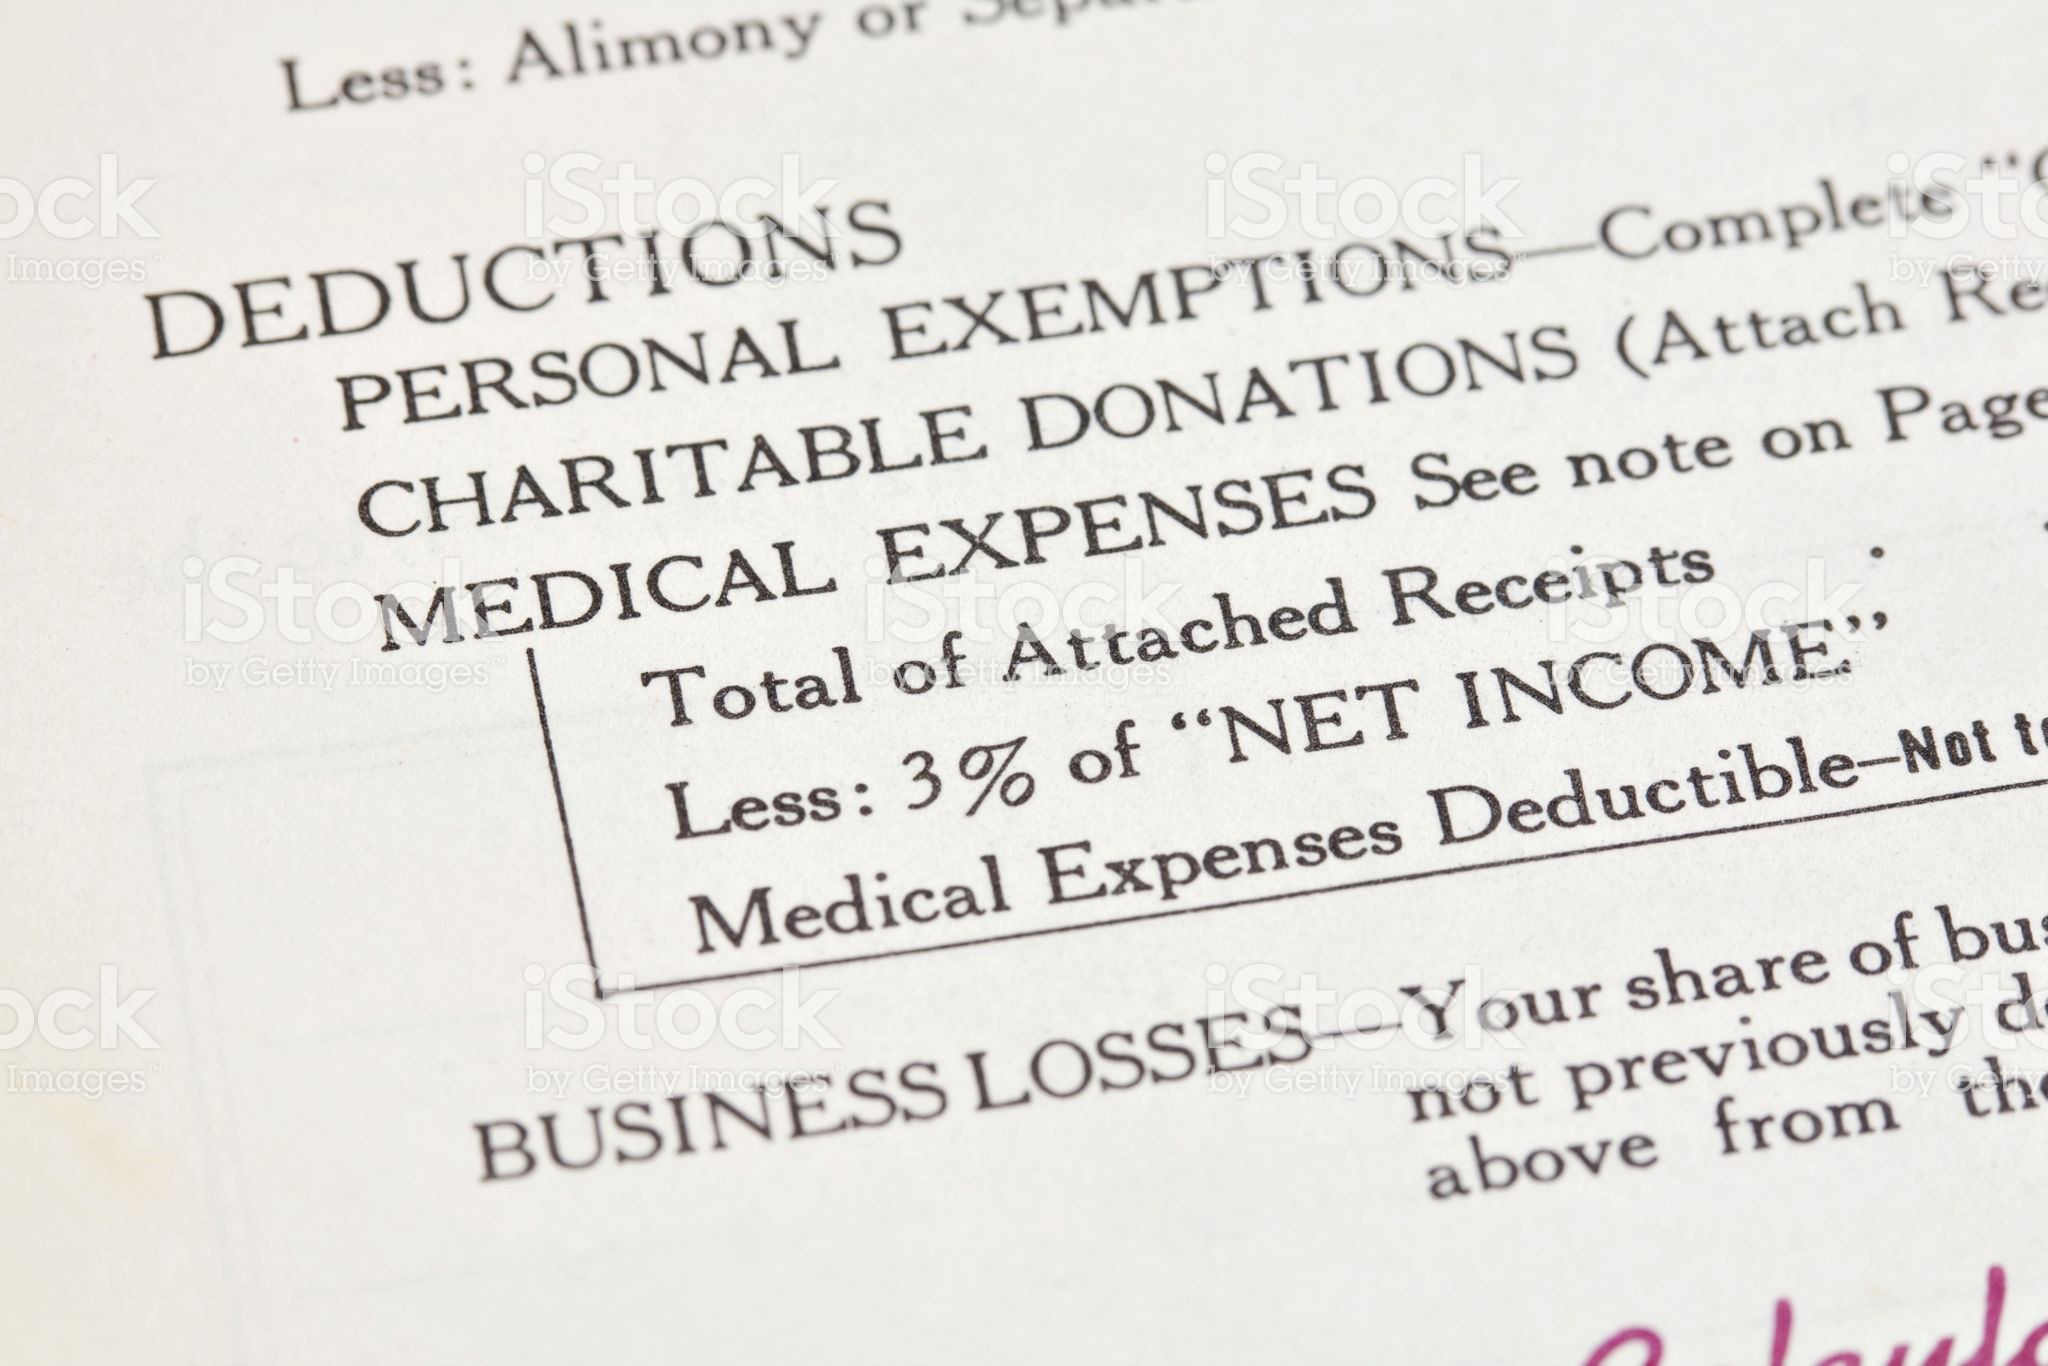 How a Charitable Deduction Translates Into Tax Savings